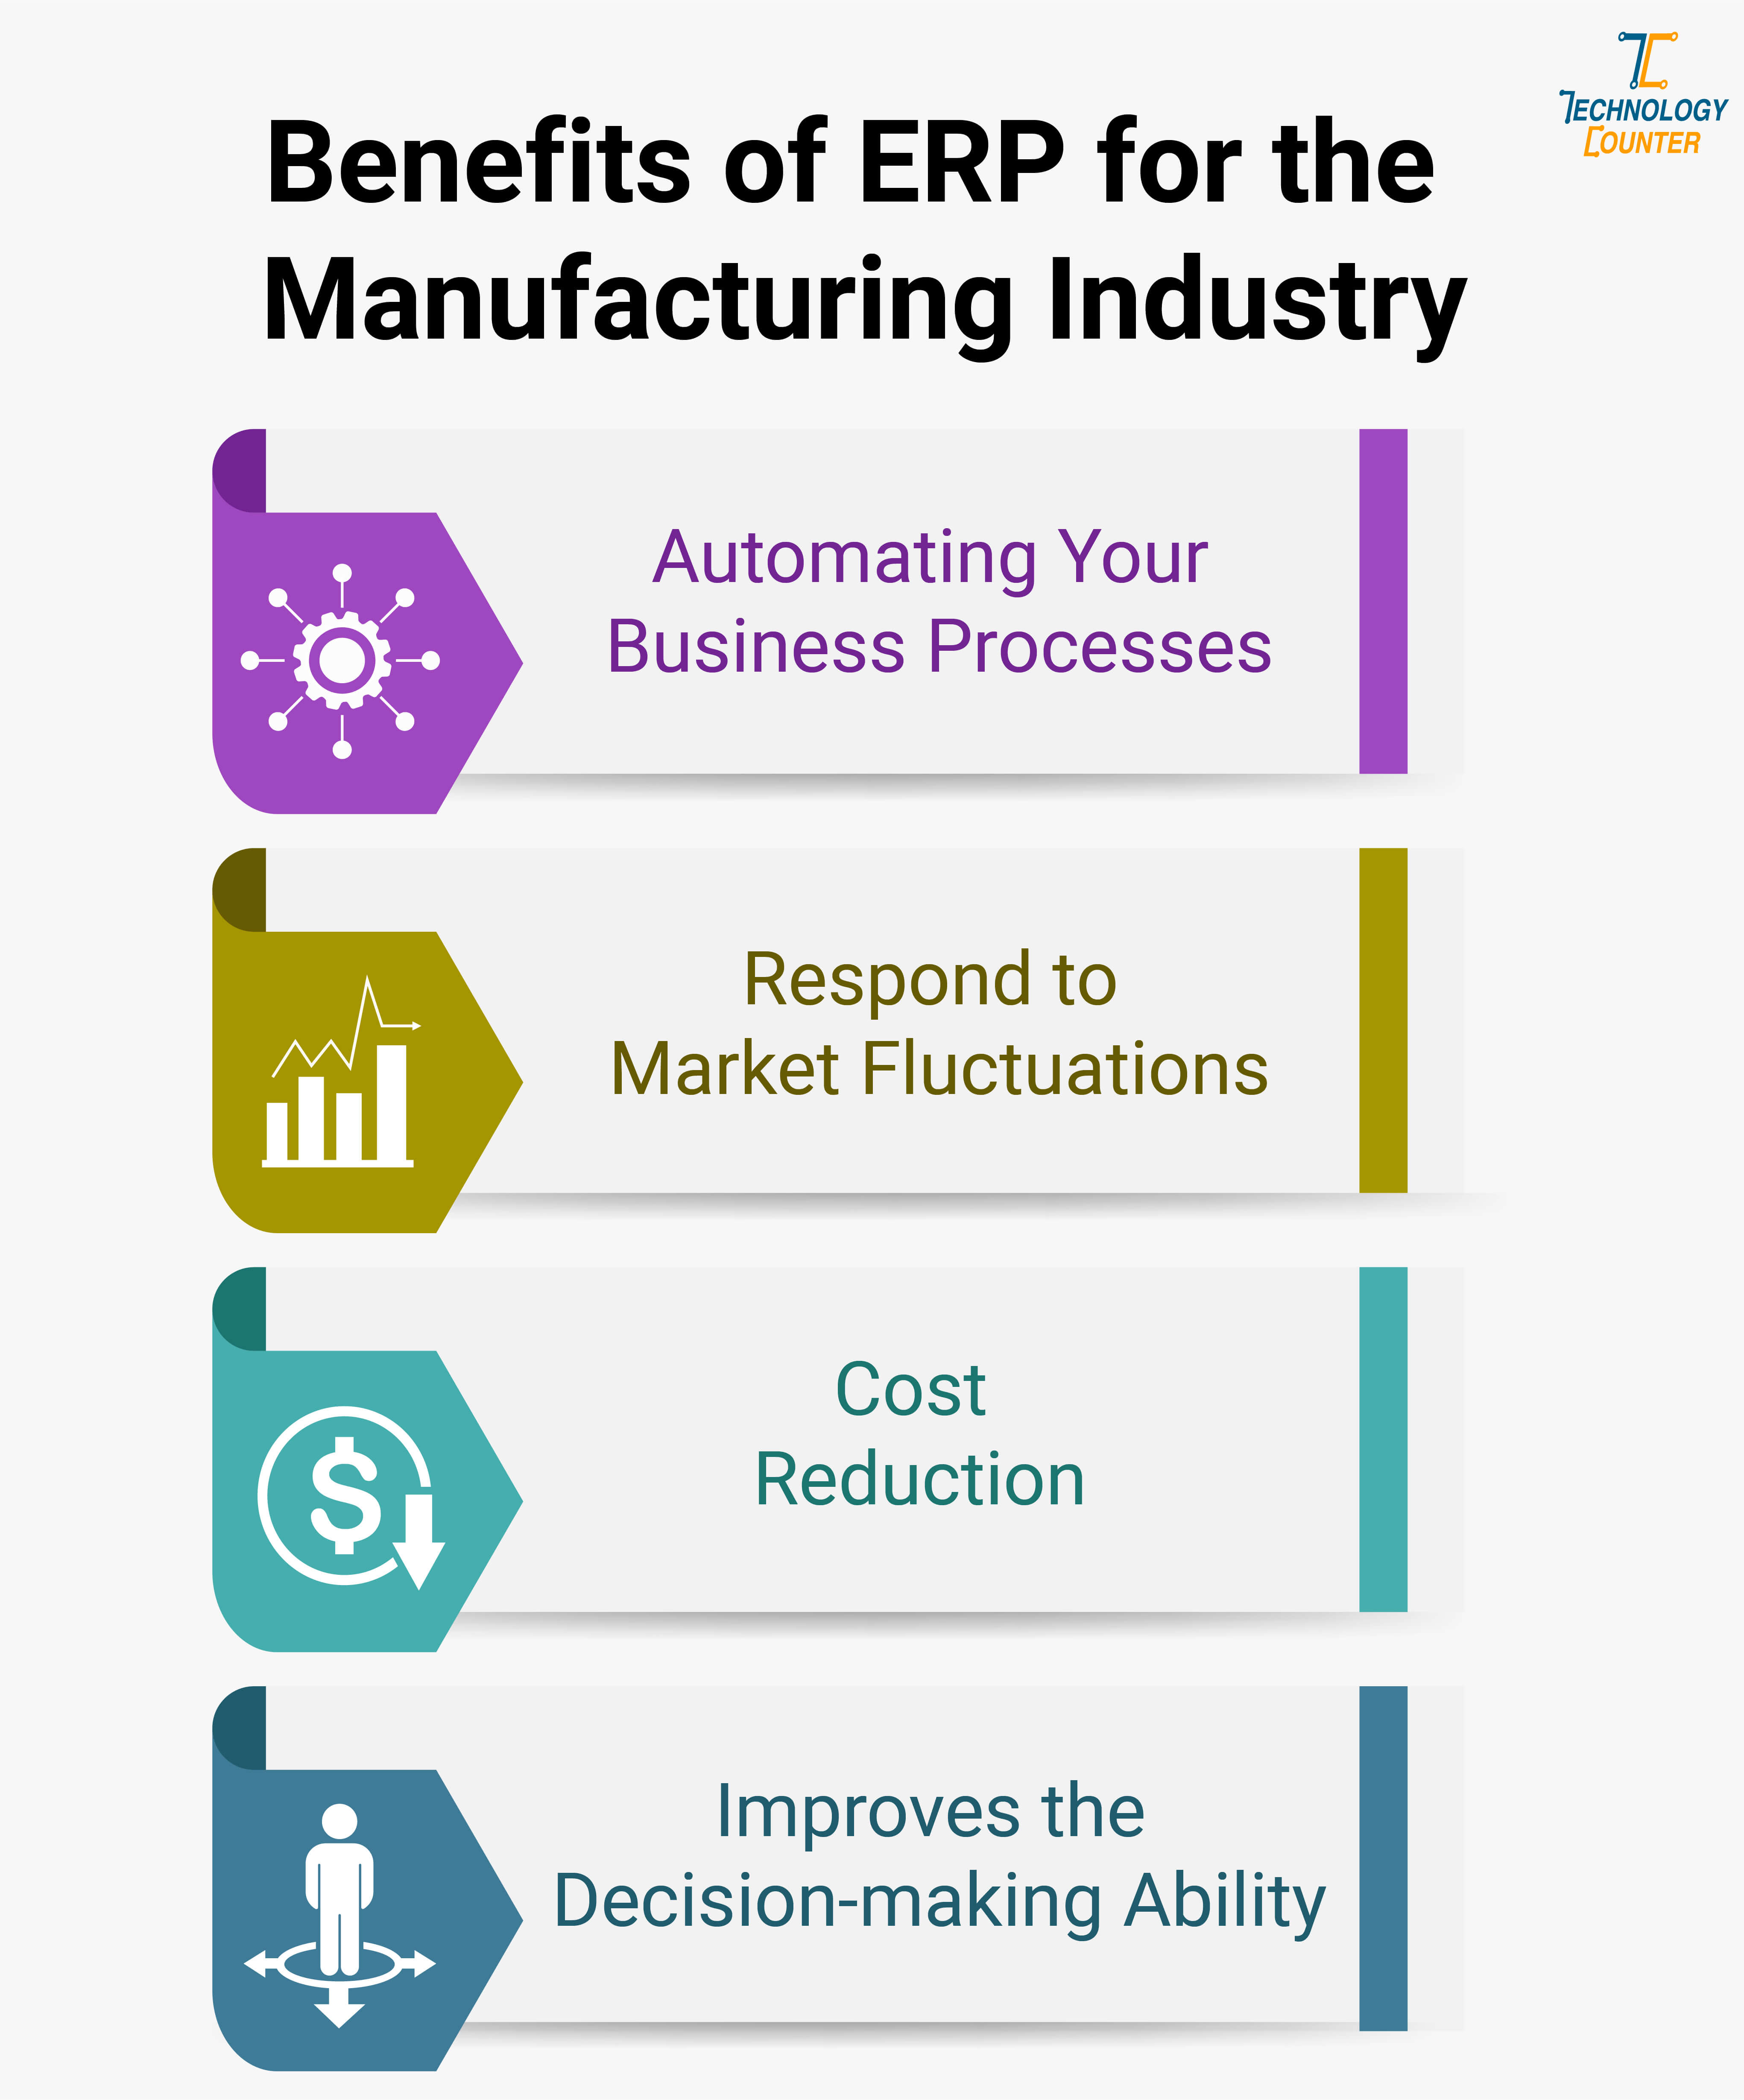 Benefits Of ERP For The Manufacturing Industry